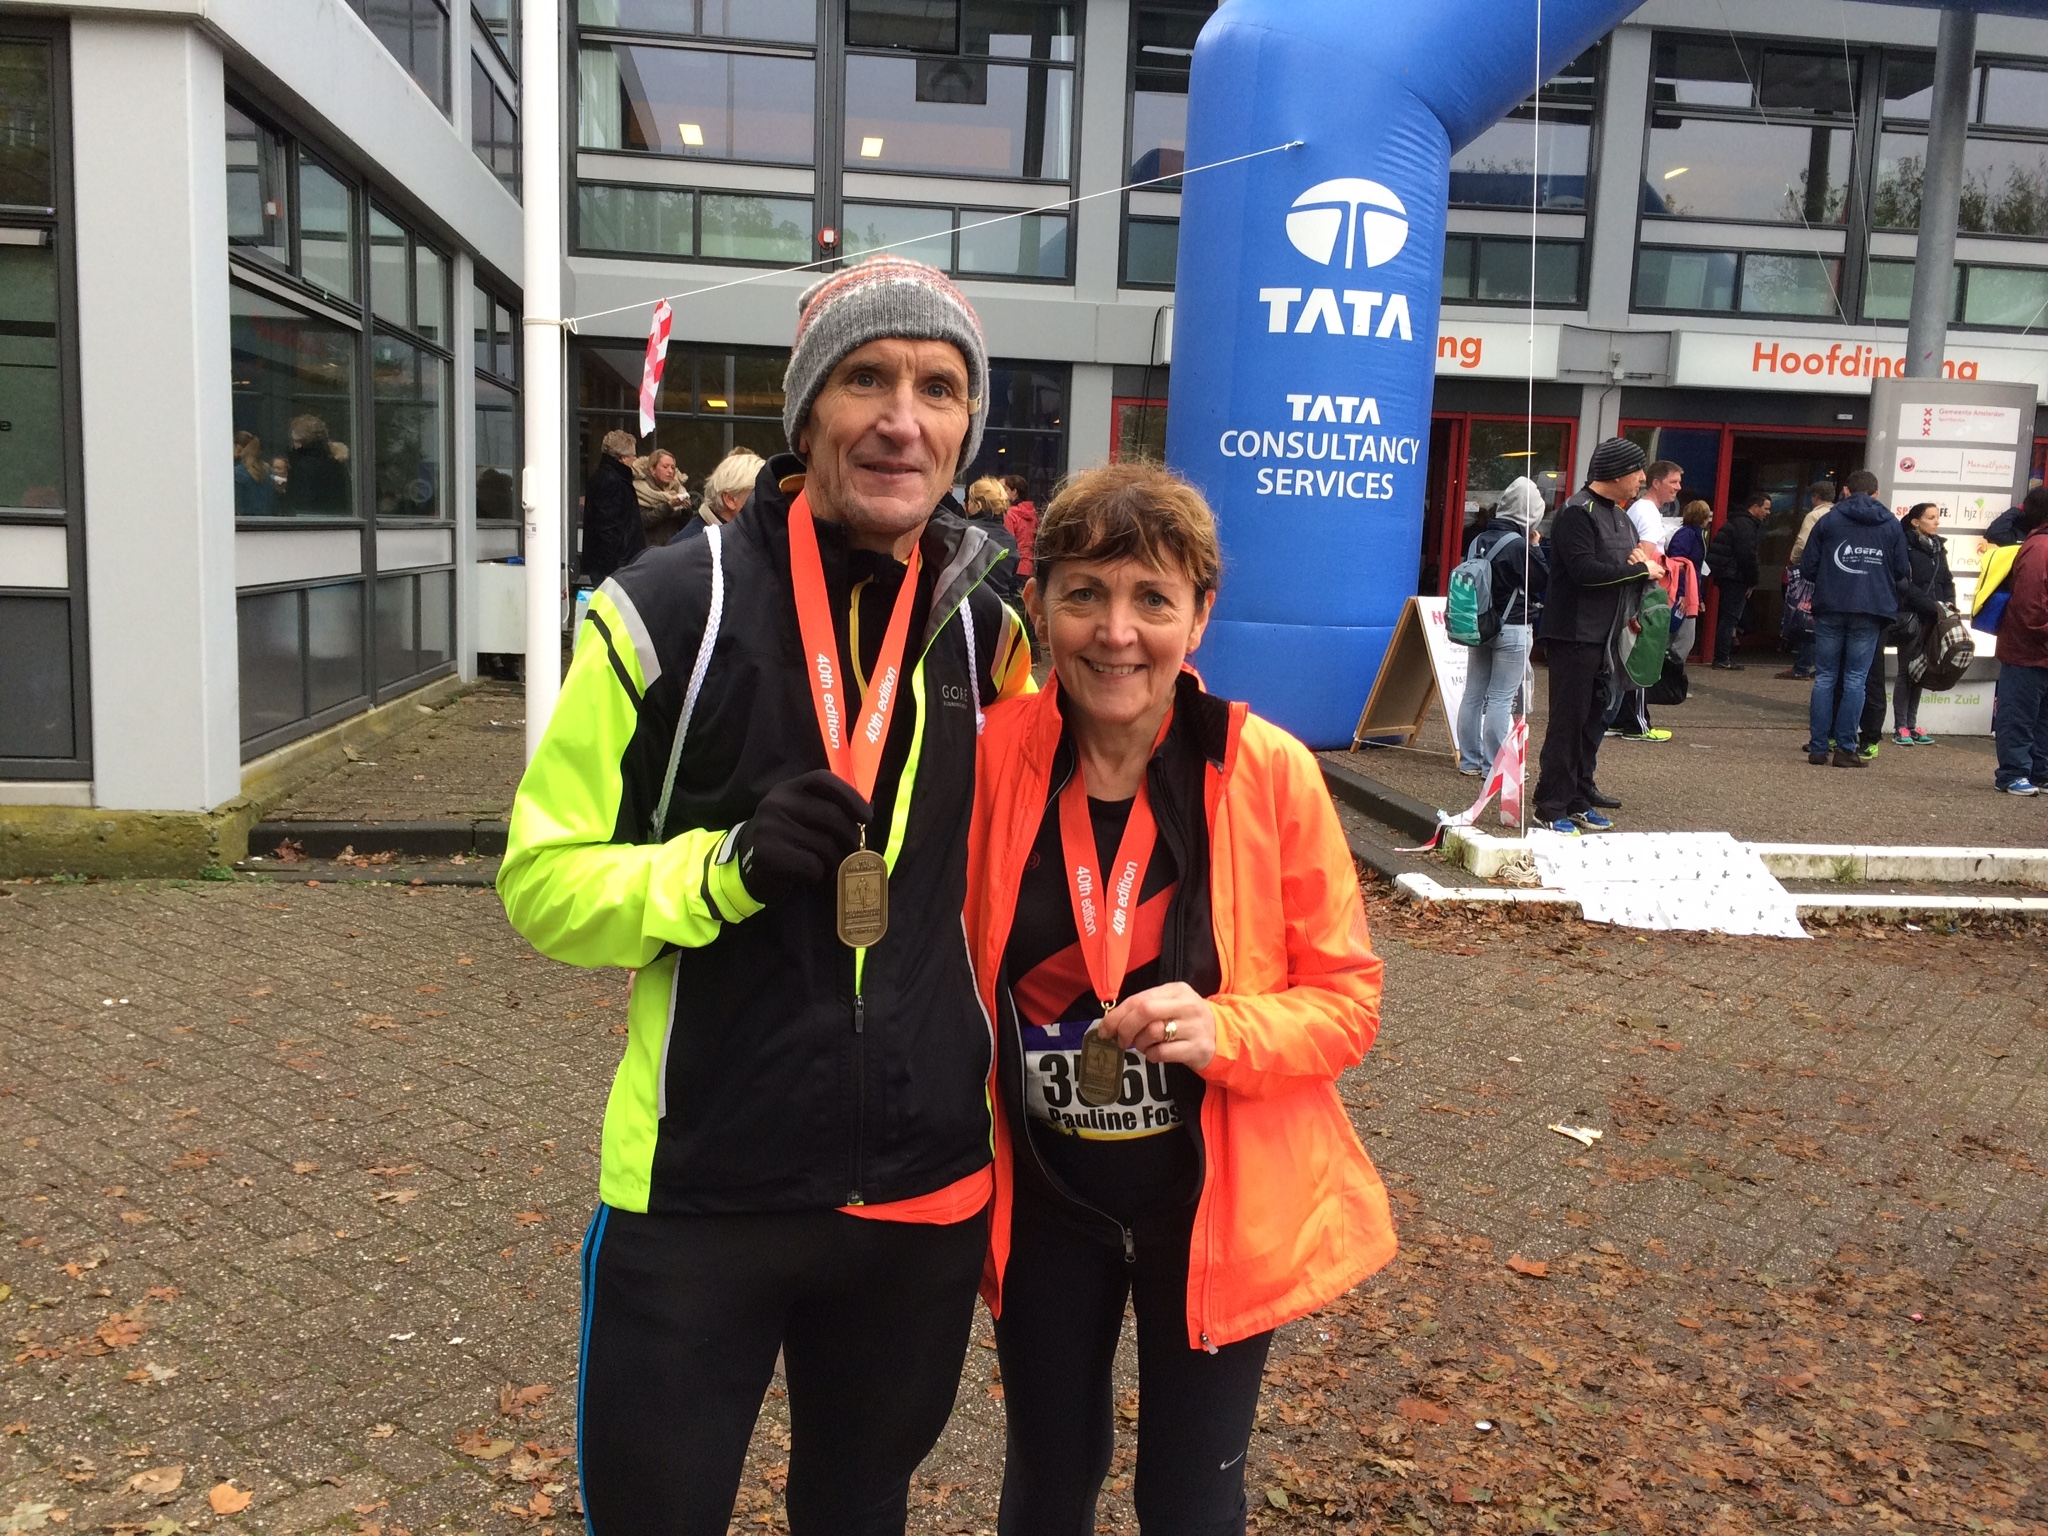 Tony and Pauline Foster from Wigan ran the Amsterdam marathon on Sunday 18th October 2015. Pauline ran the half marathon while Tony ran the whole 26 miles. It's the first time either of them have ever ran a marathon before.